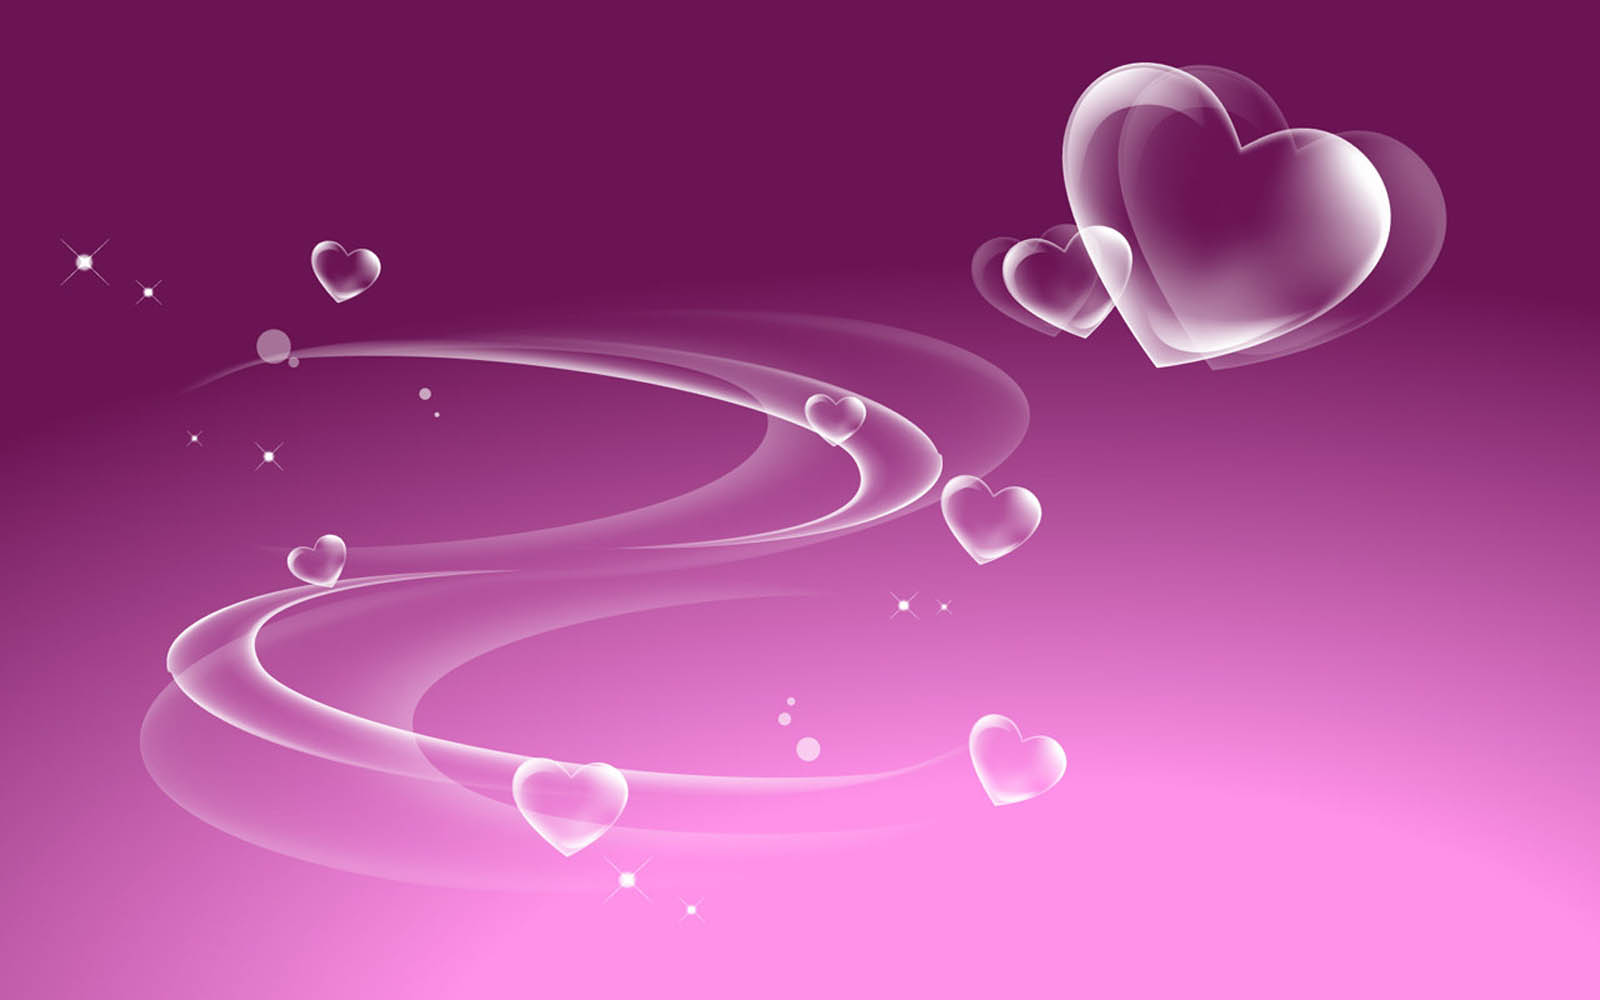 hearts desktop wallpaper - photo #27